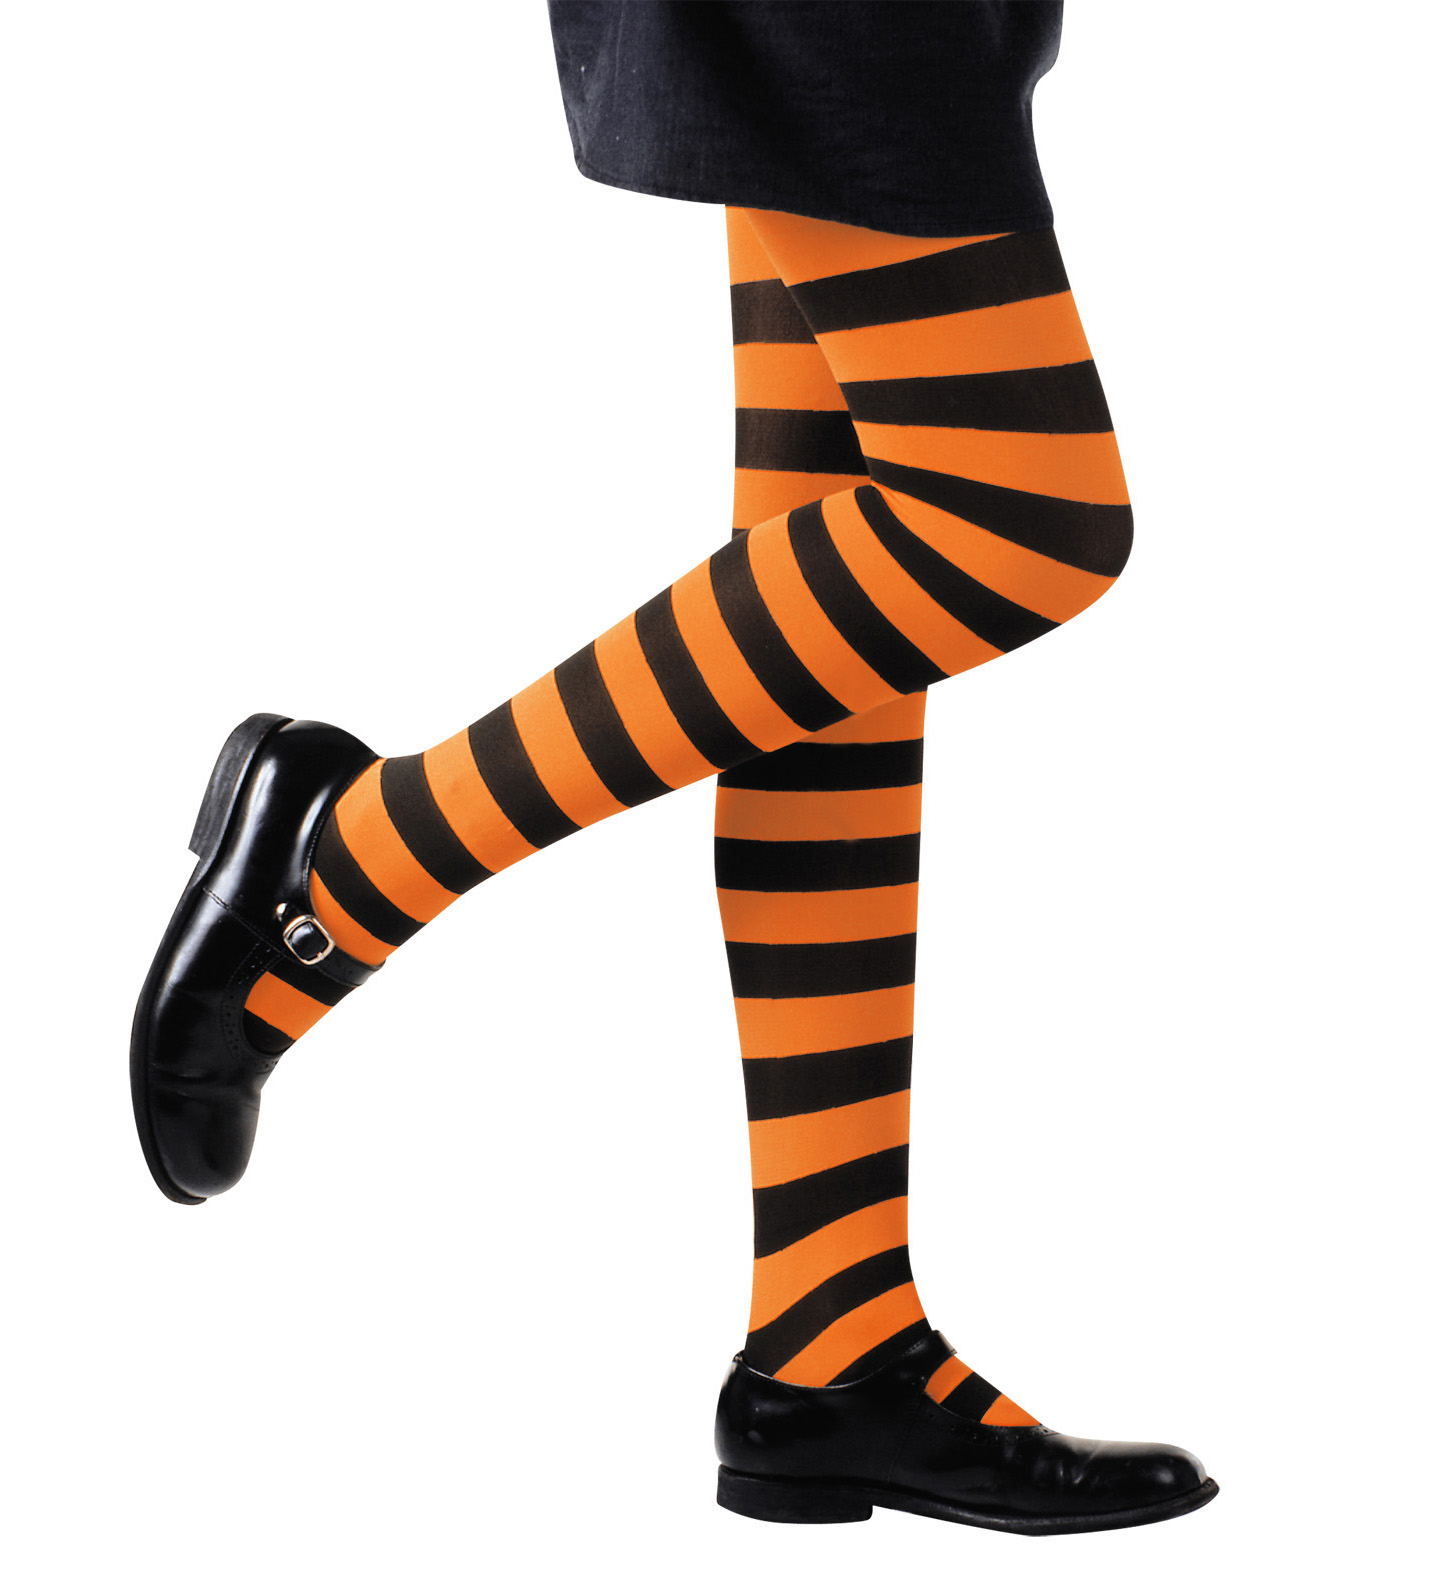 Pantyhose Striped - Orange/Black Stockings Tights Pantyhose Lingerie Halloween